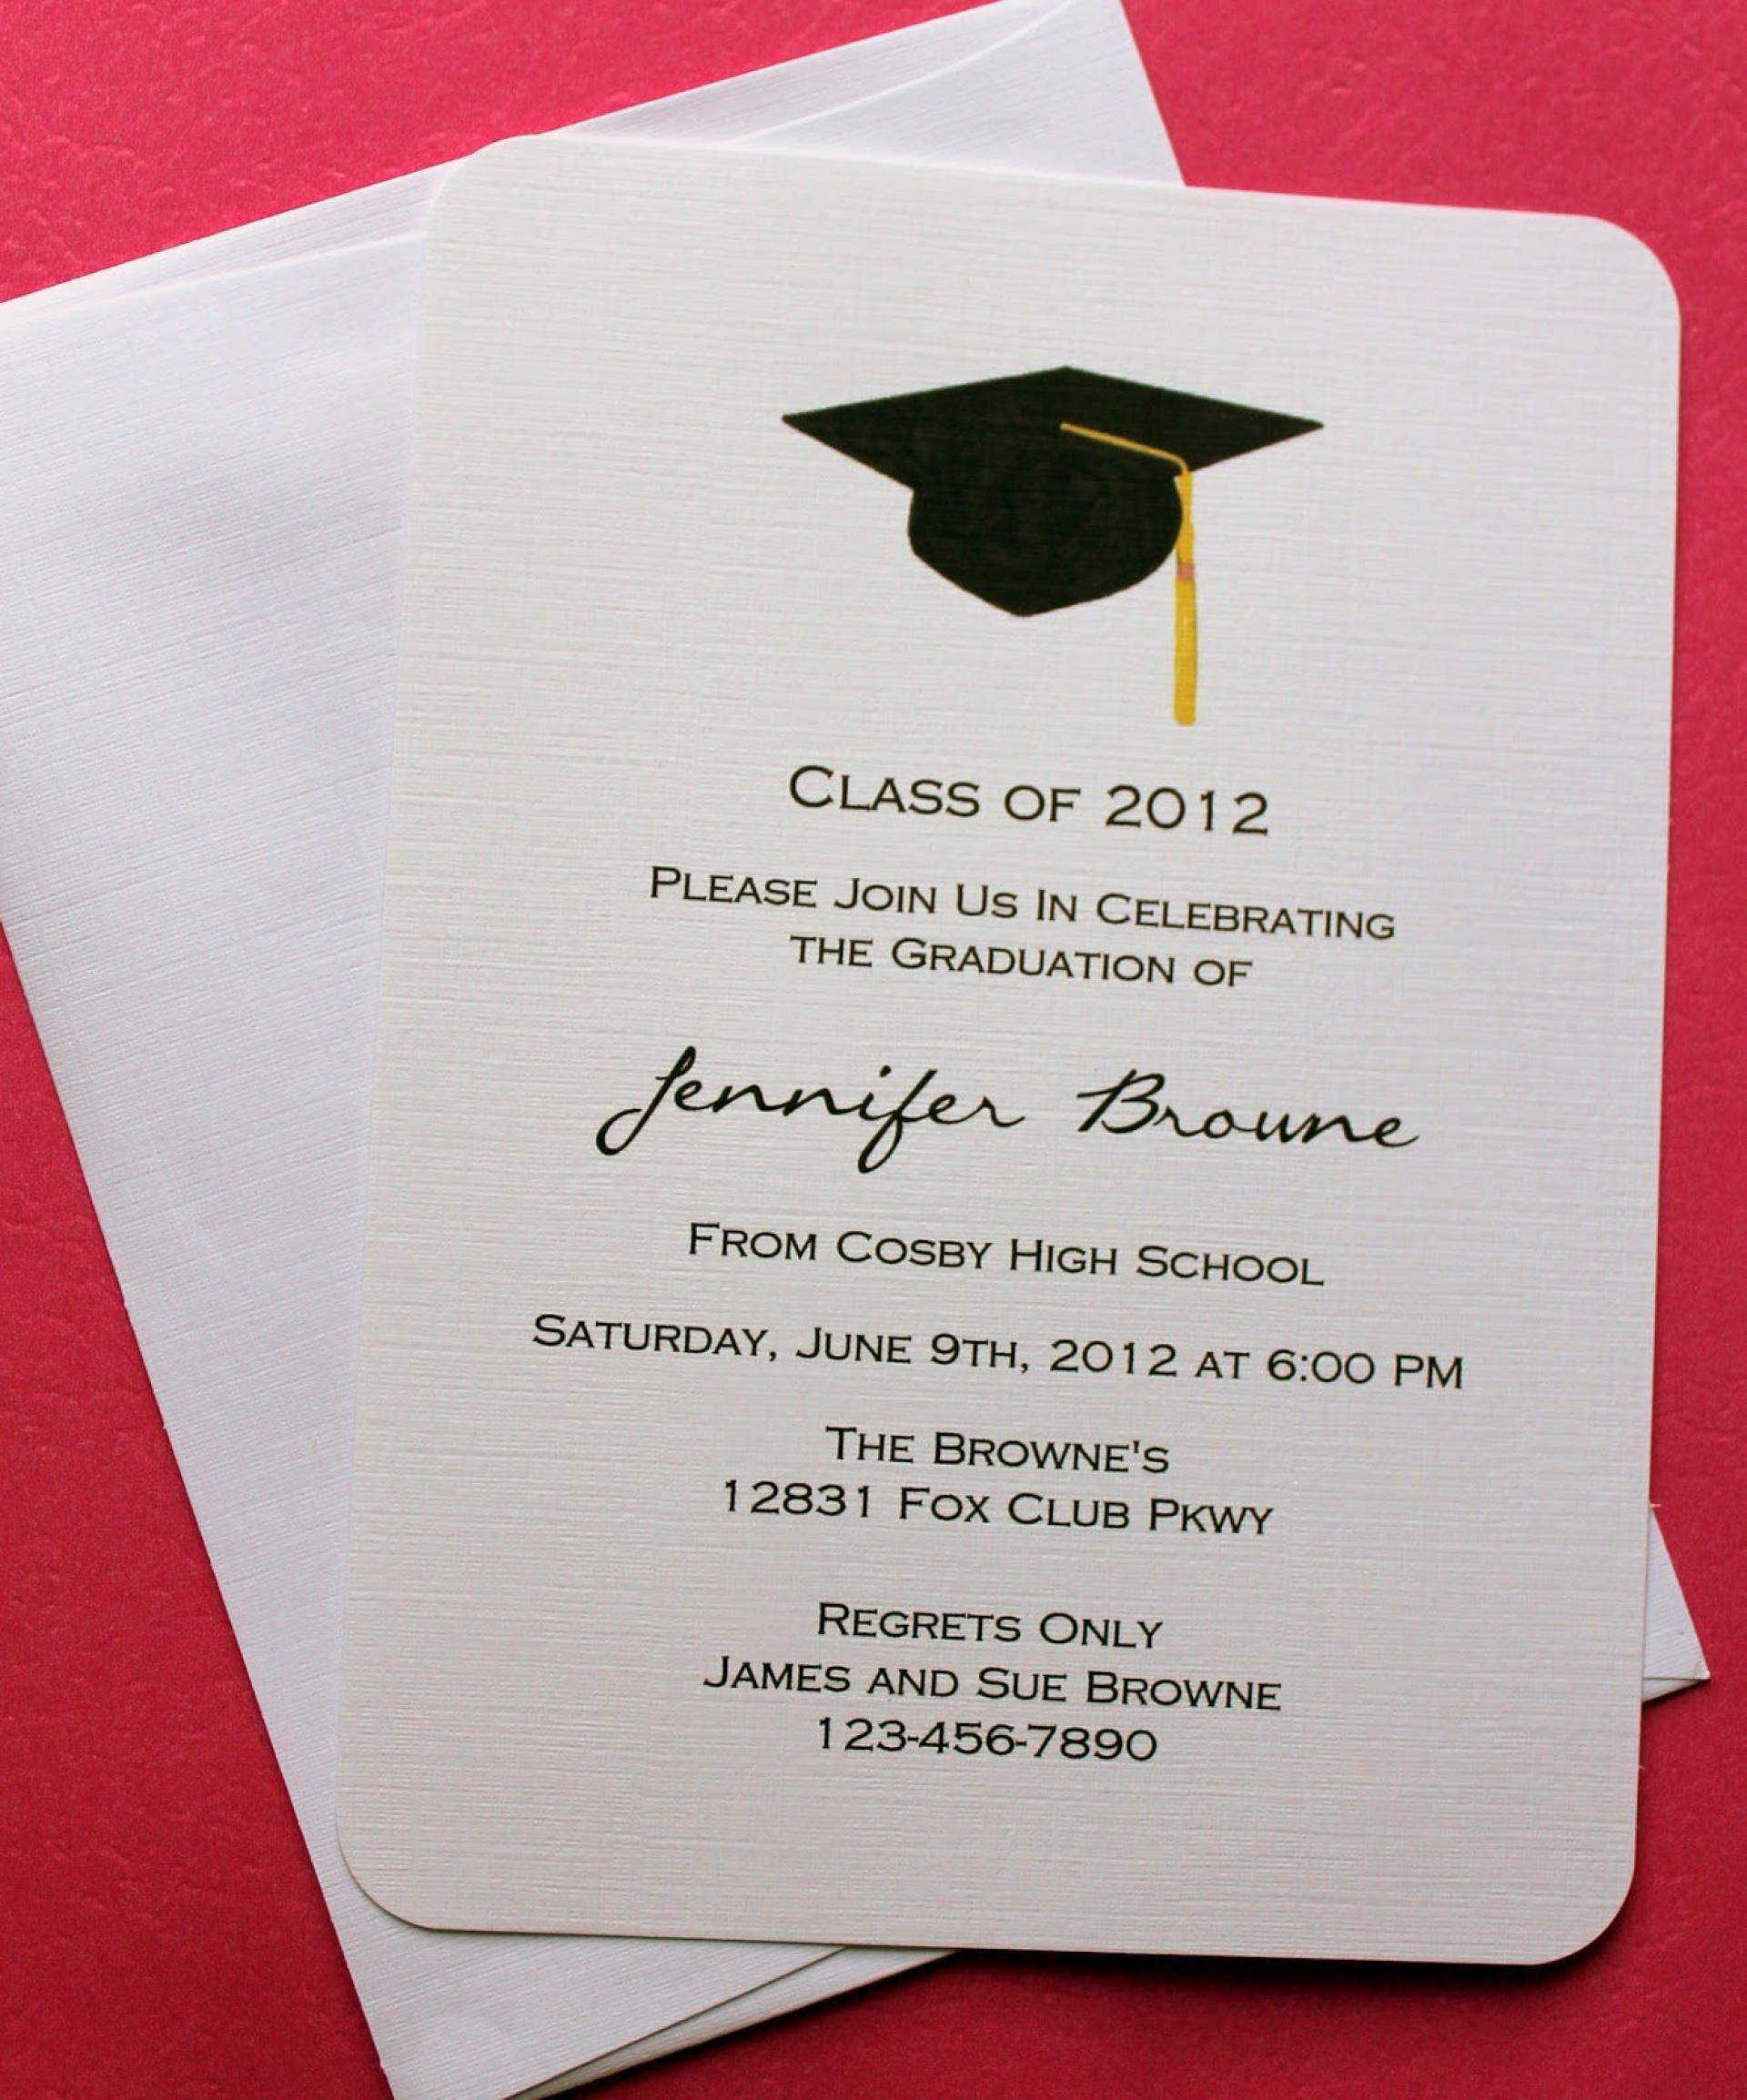 007 Fantastic College Graduation Invitation Template Image  Party Free For Word1920